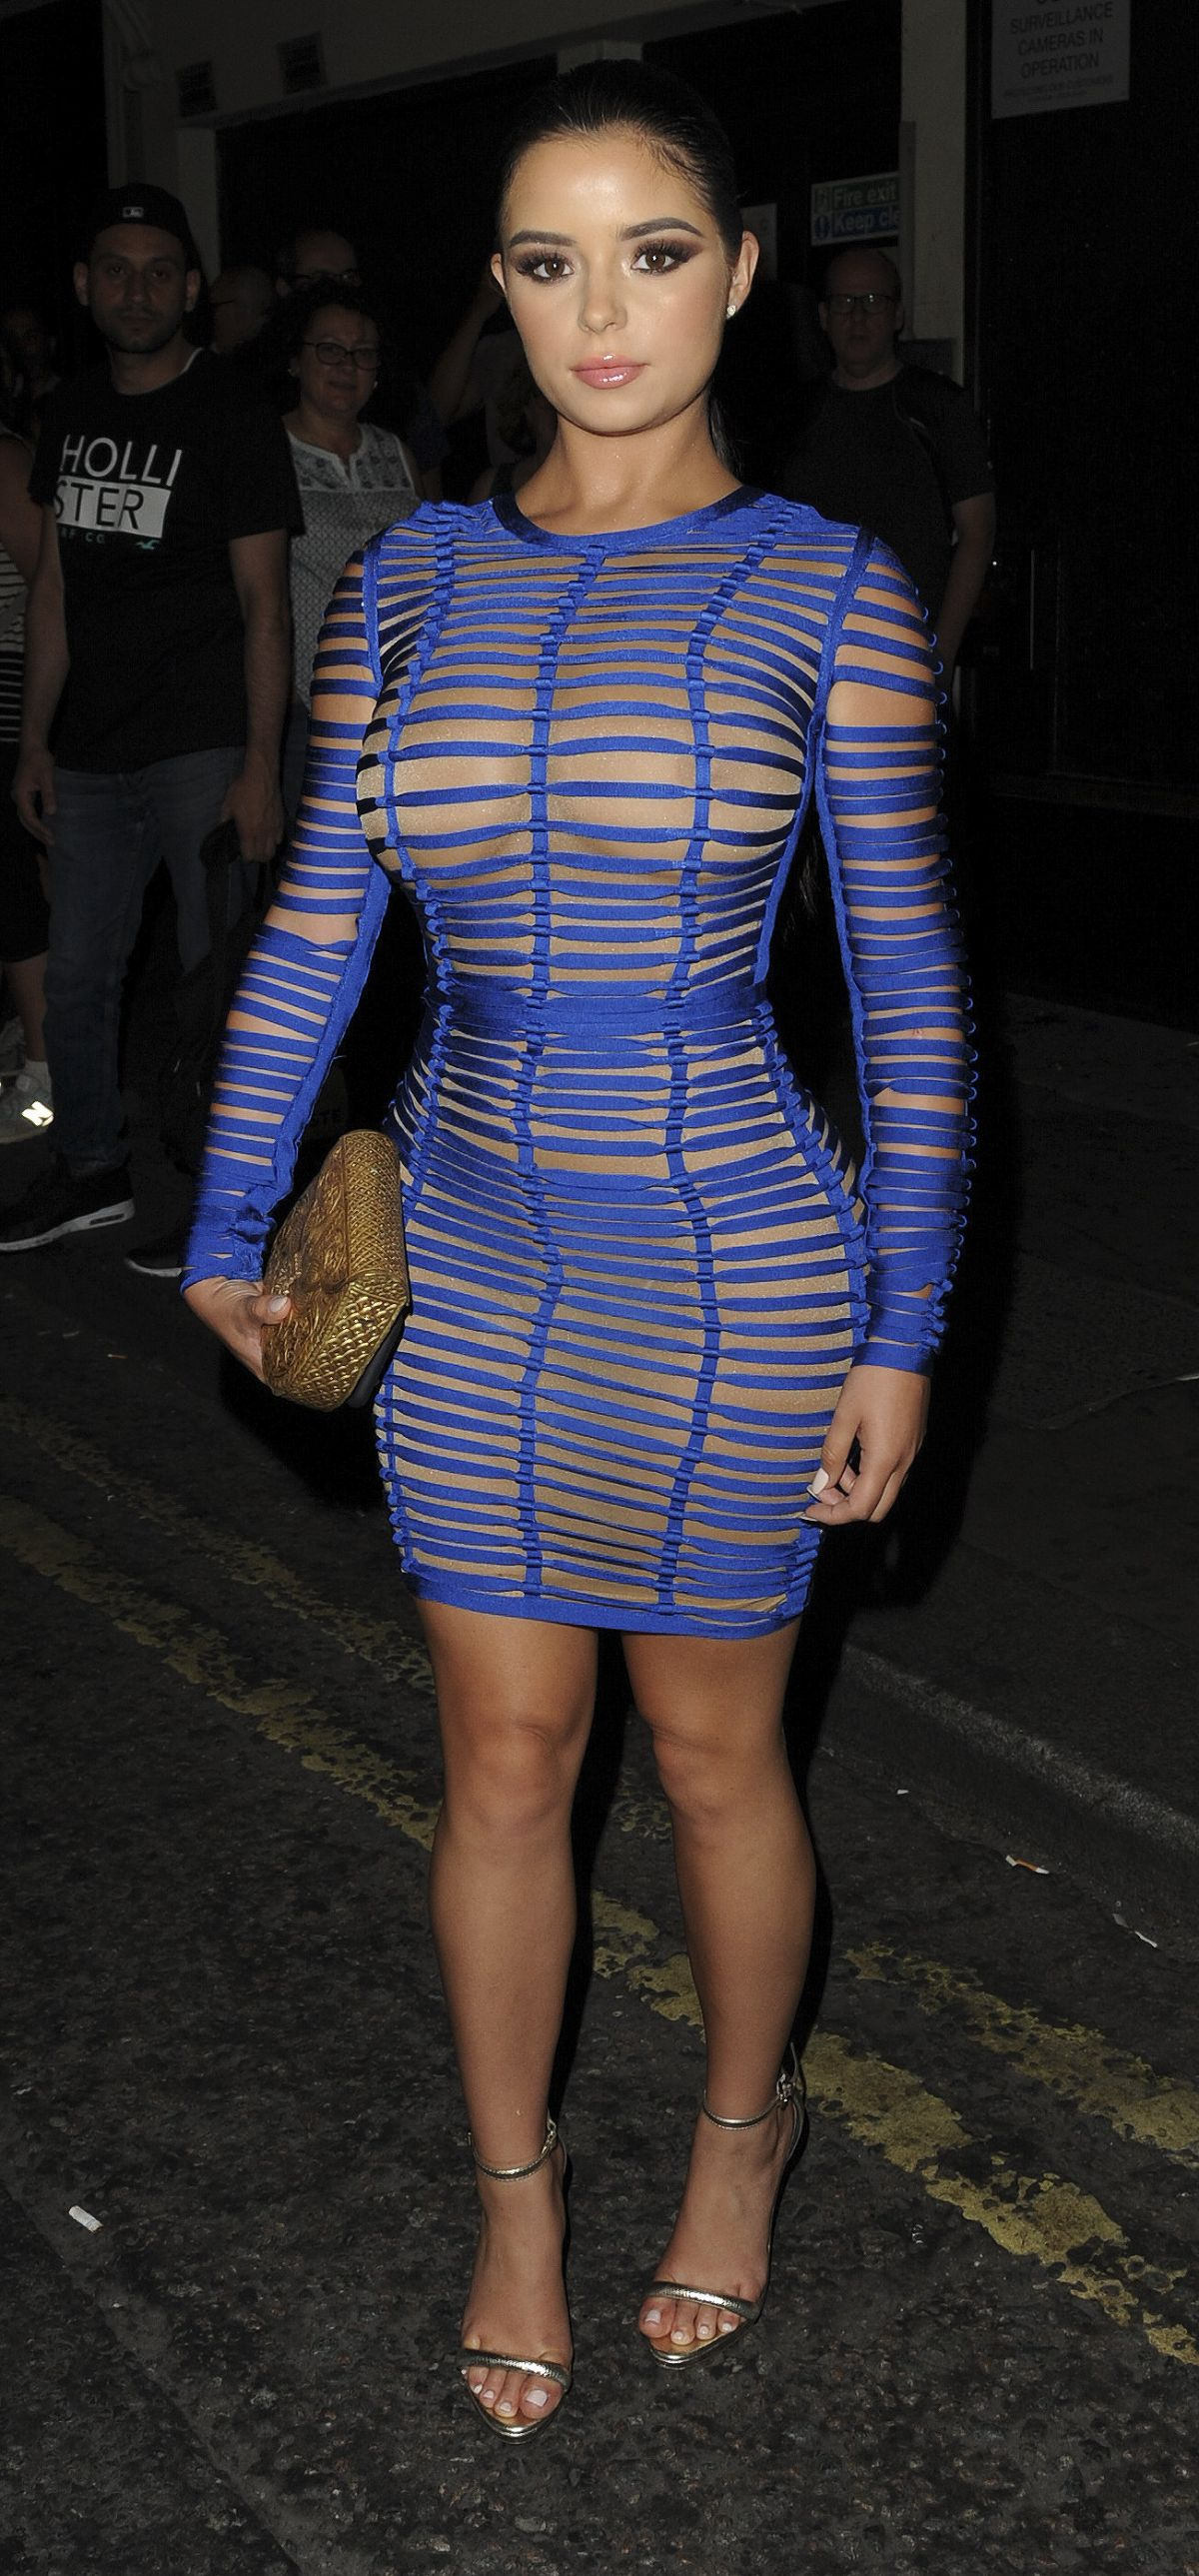 DEMI ROSE MAWBY Arrives at Sixty6 Magazine Launch Party in London 06/21/2017